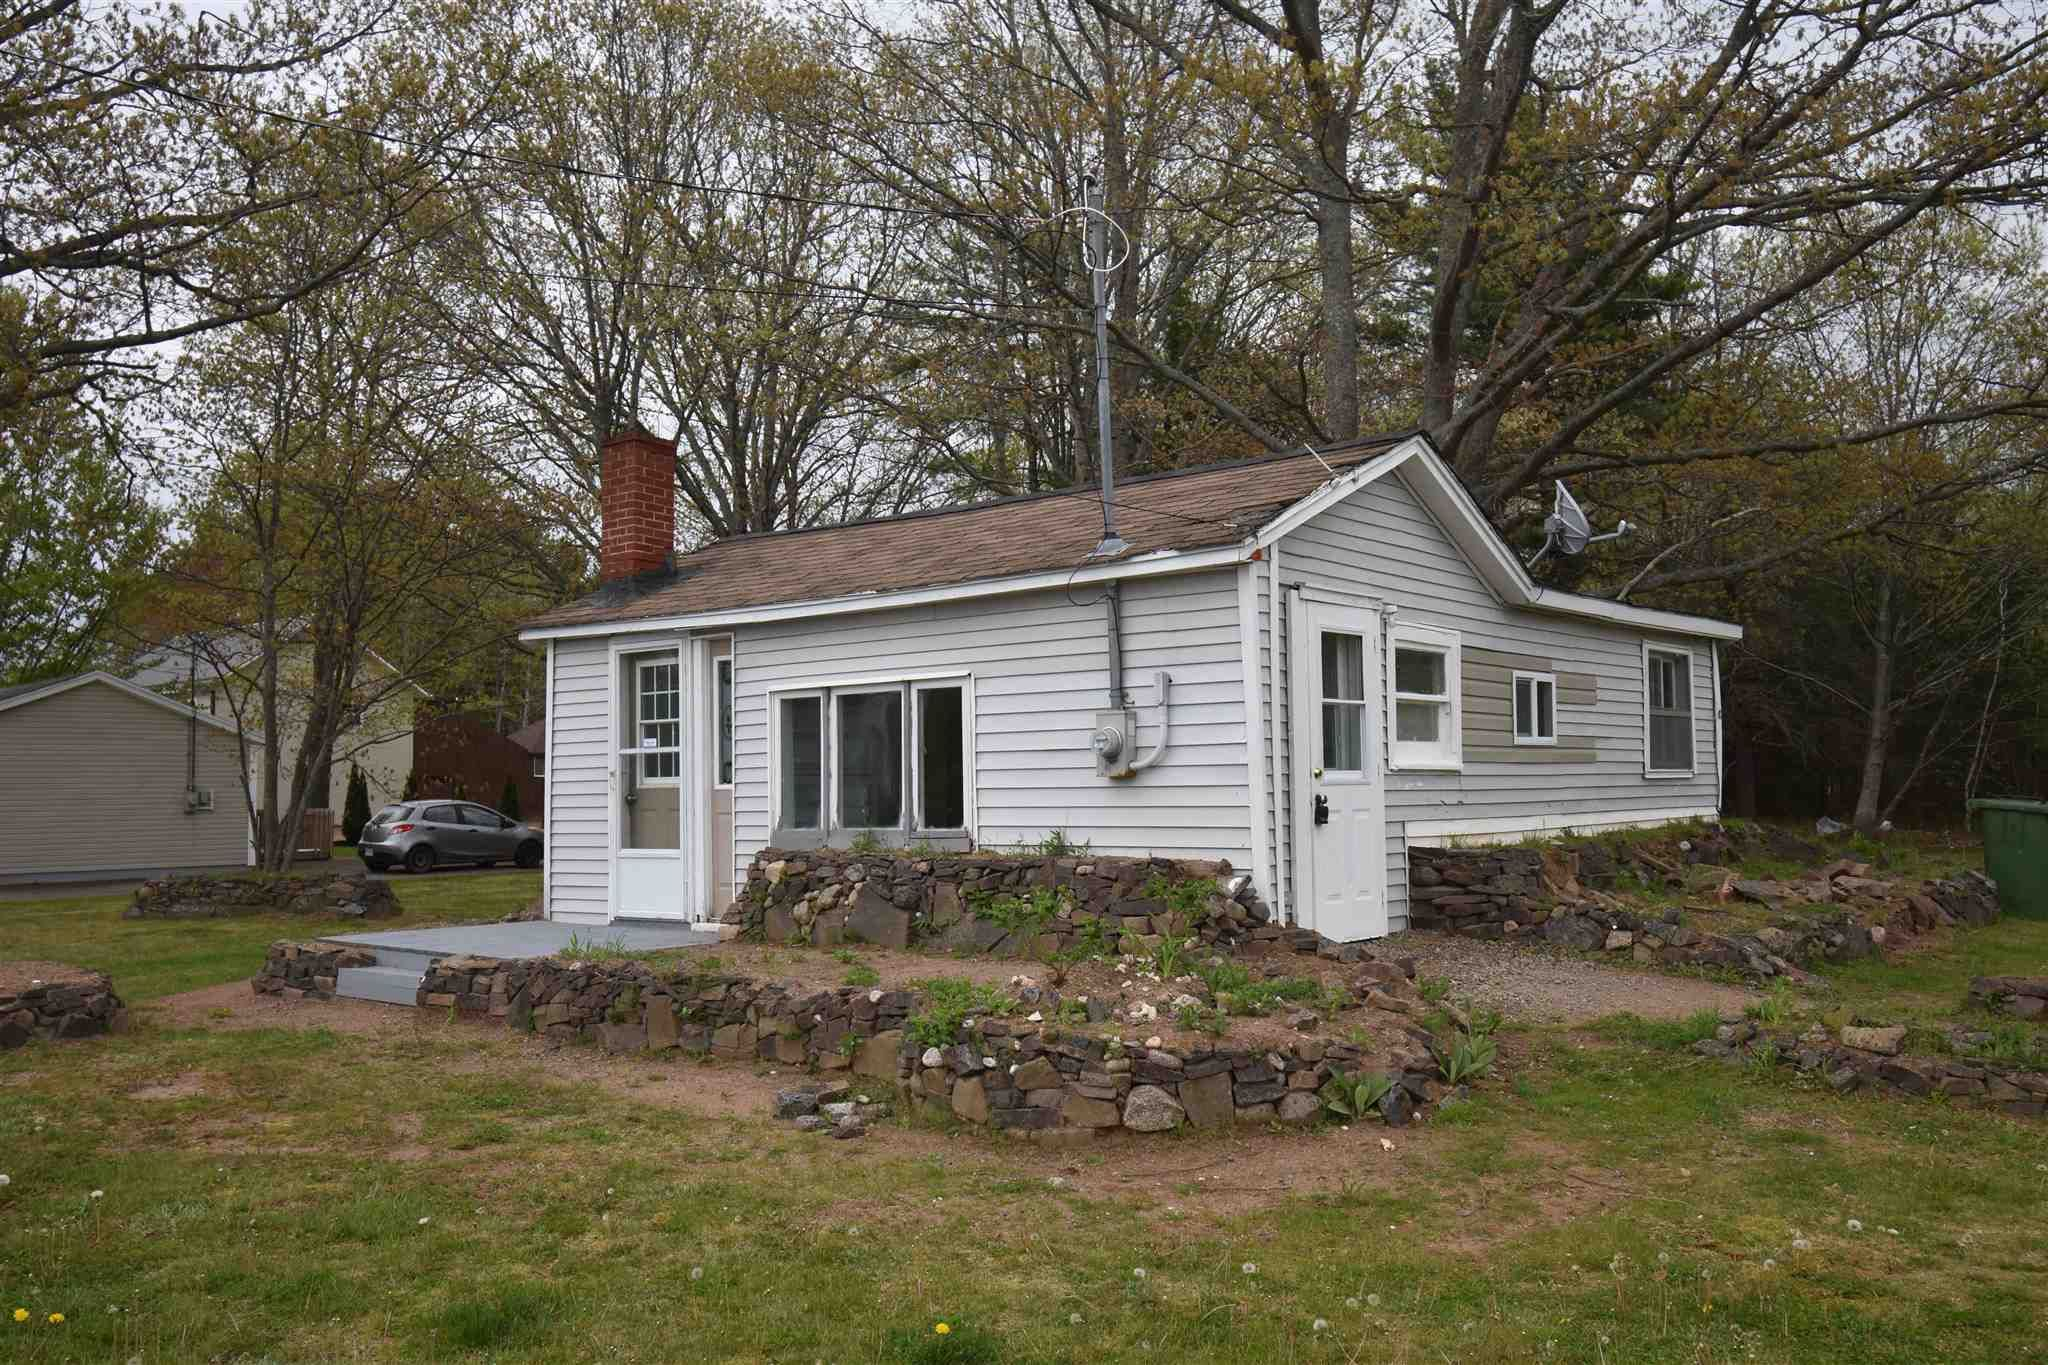 Main Photo: 1086 Highway 201 in Greenwood: 404-Kings County Residential for sale (Annapolis Valley)  : MLS®# 202118280